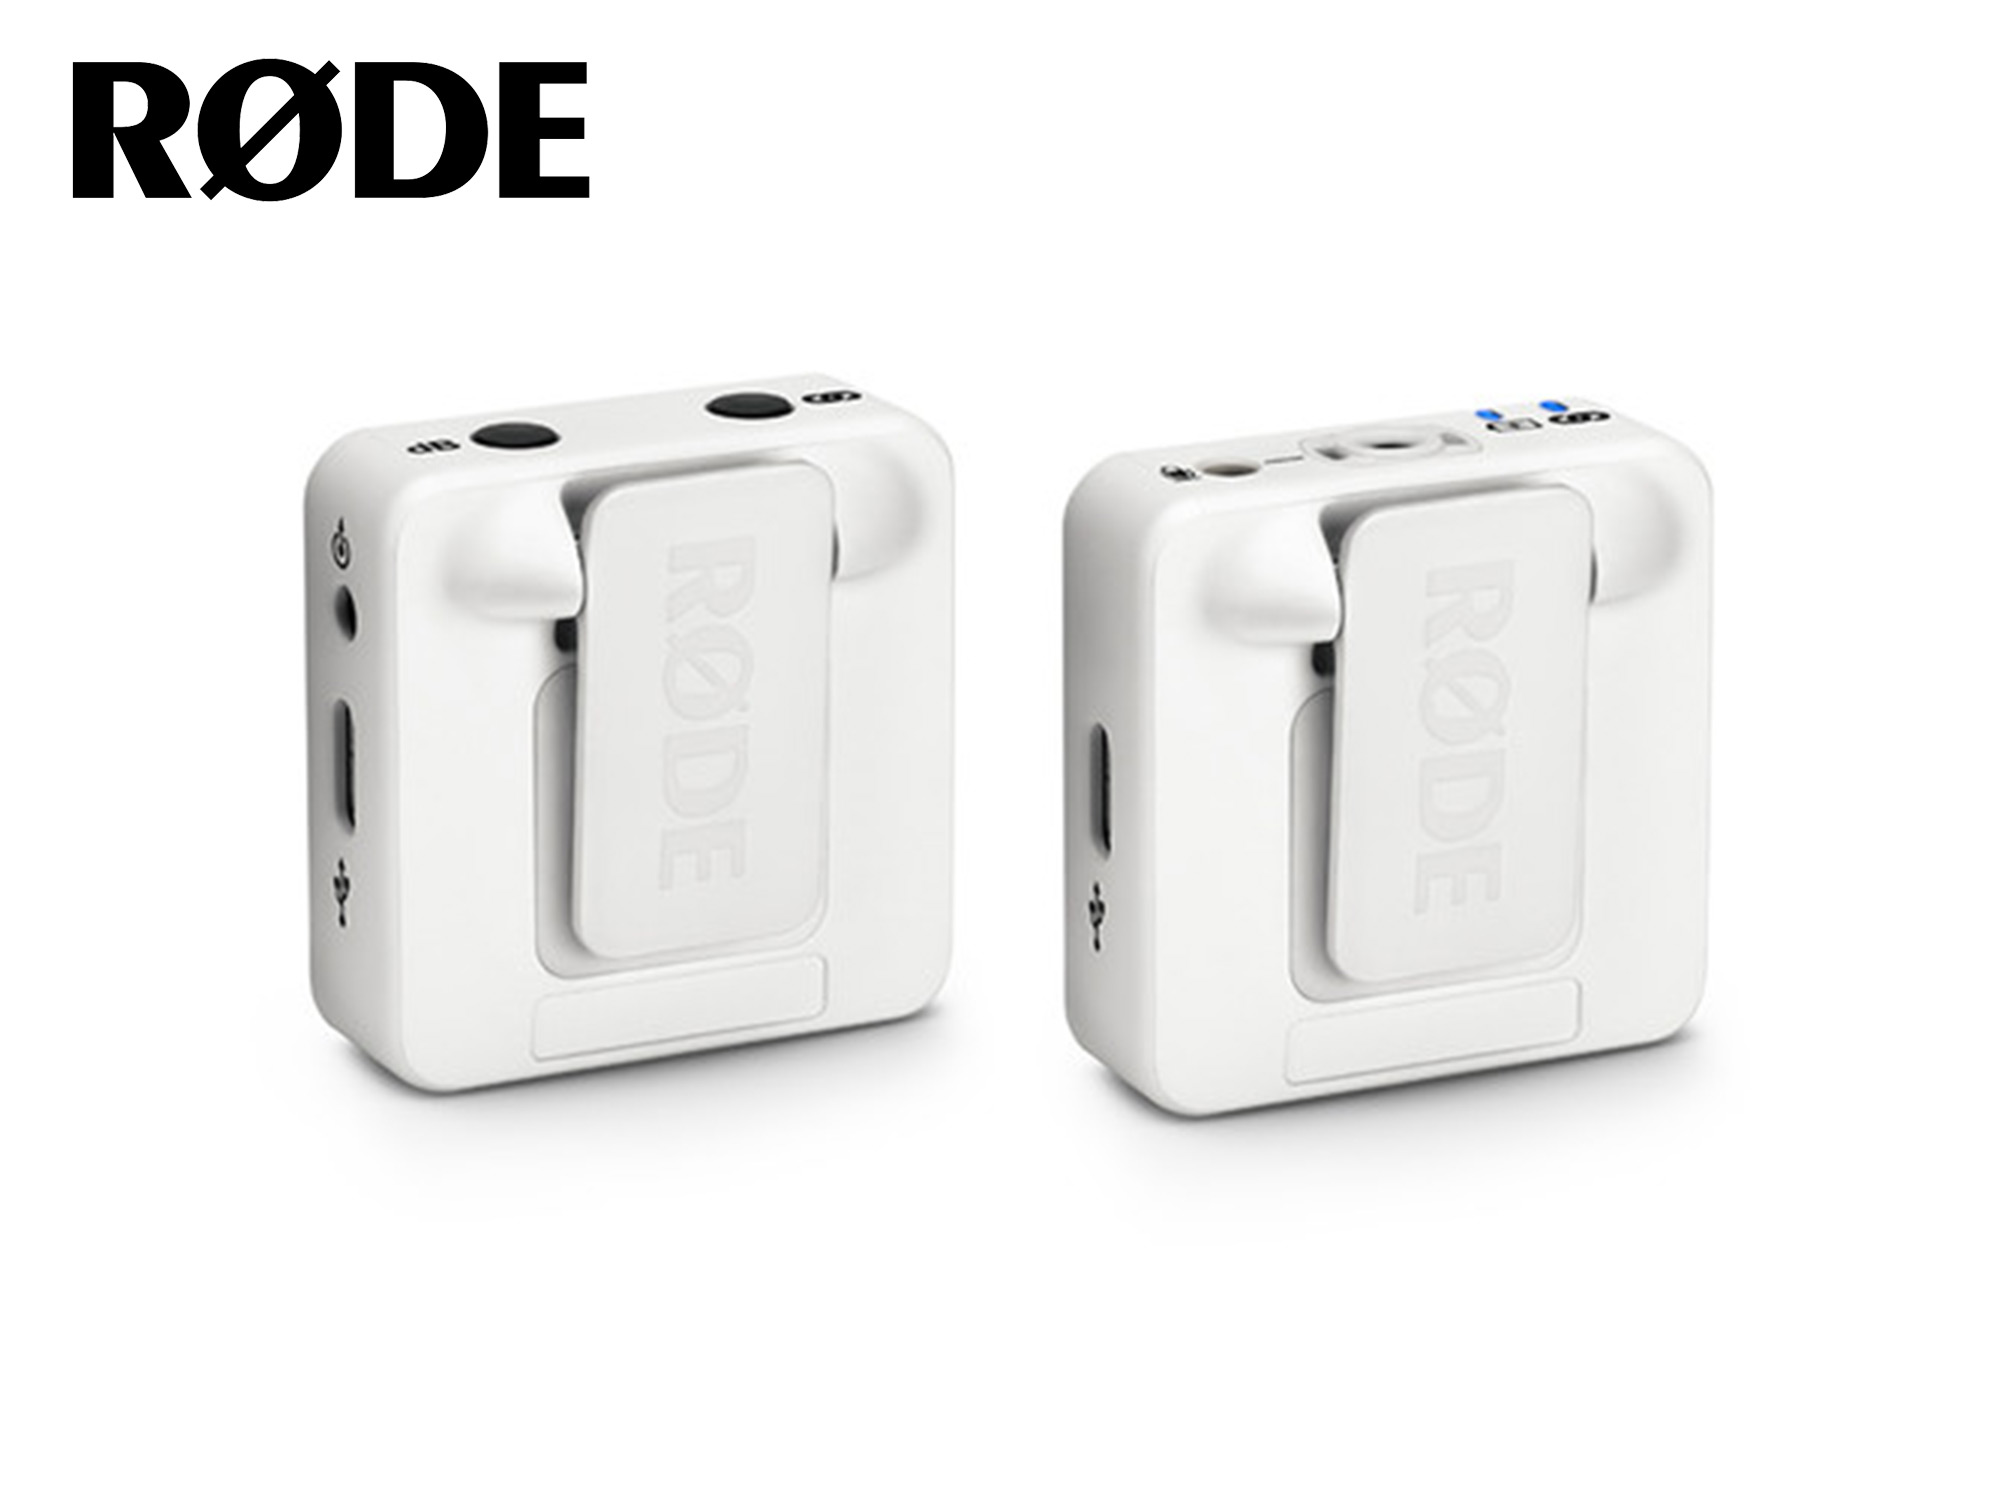 Rode Wireless GO Compact Wireless Microphone System (White)